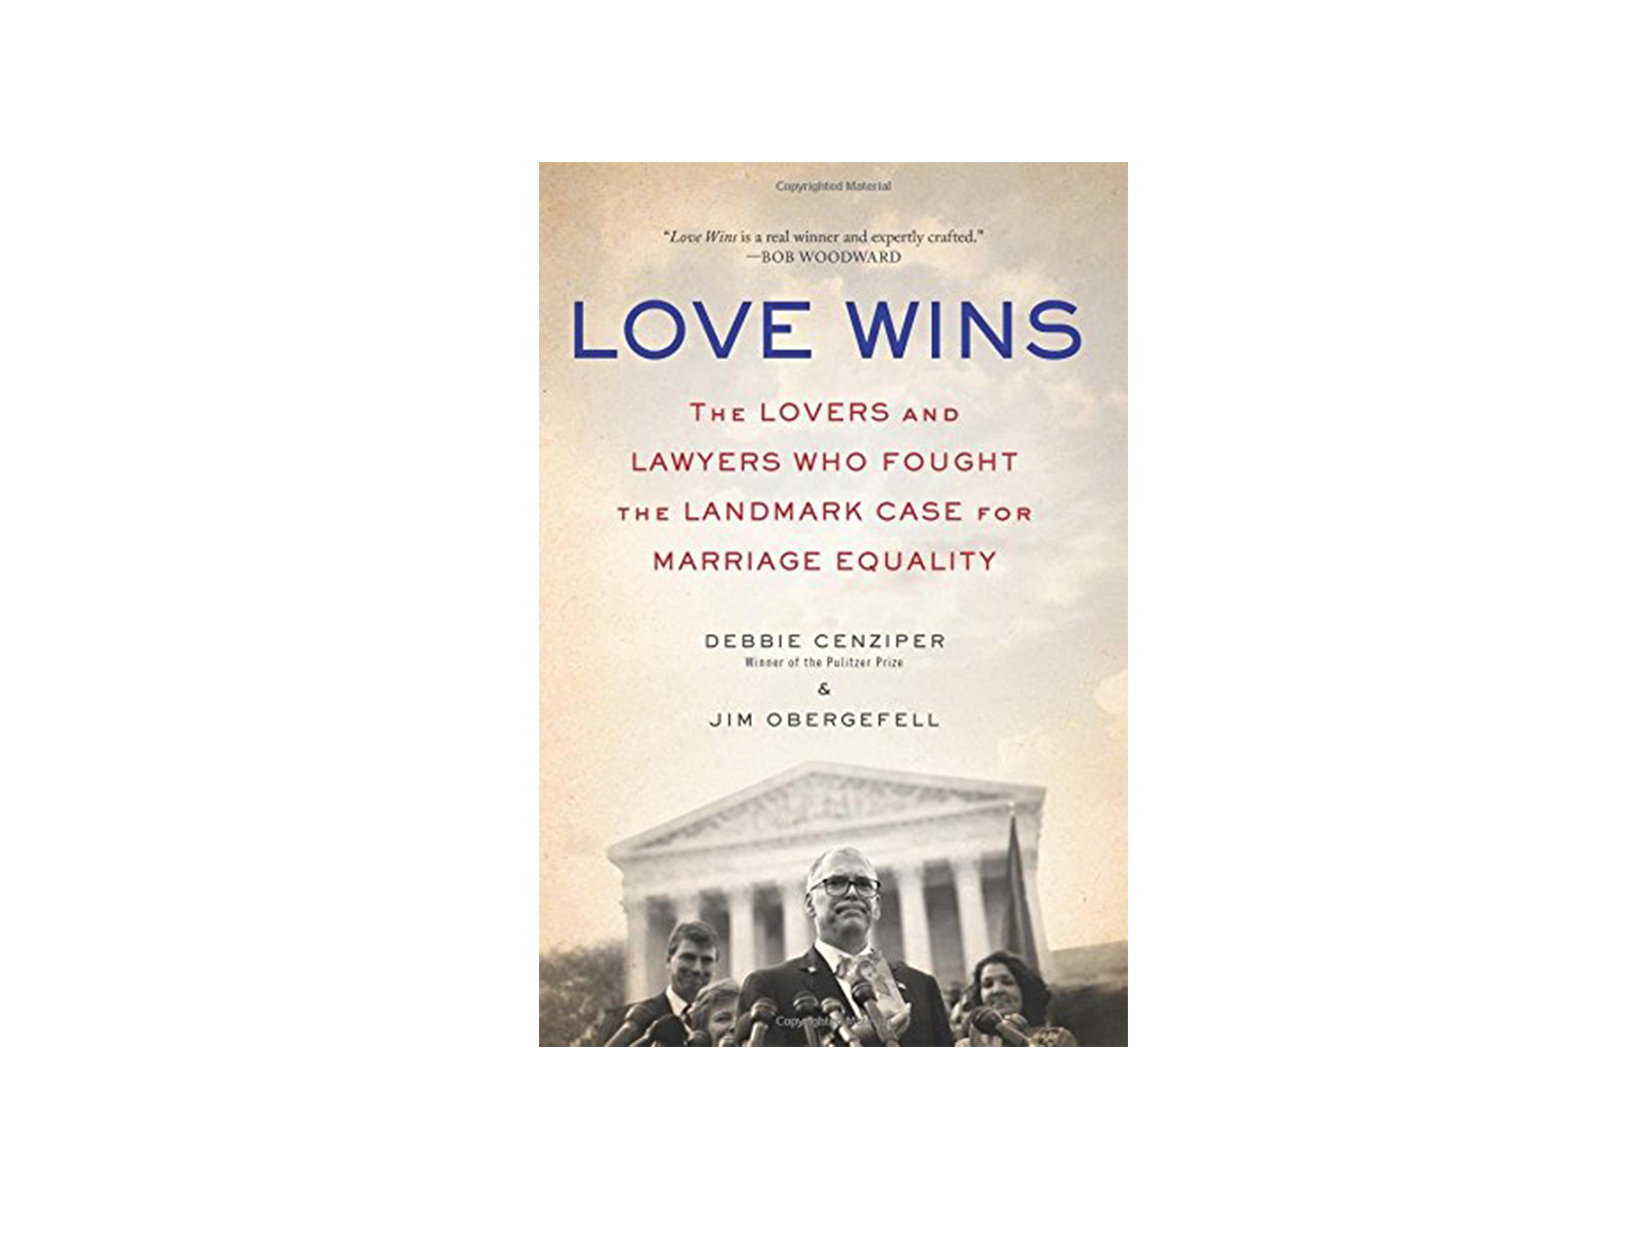 Love Wins by Debbie Cenziper & Jim Obergefell